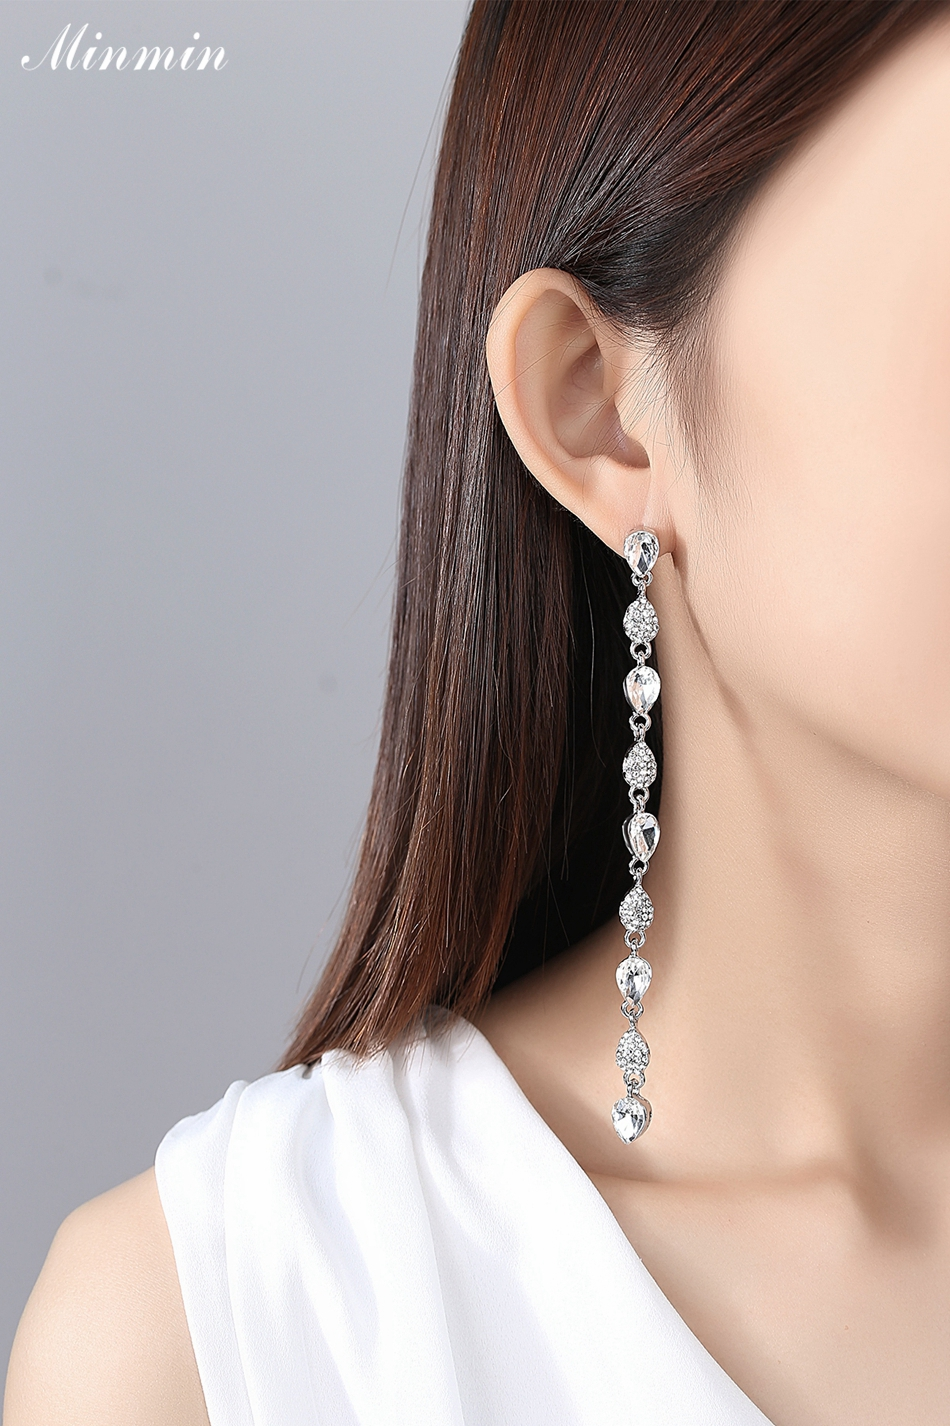 ec08083af7882 Minmin Trendy Tear Drop Gold / Silver Color Crystal Long Chain Earrings for  Woman 2018 New Fashion Wedding Party Jewelry EH1089